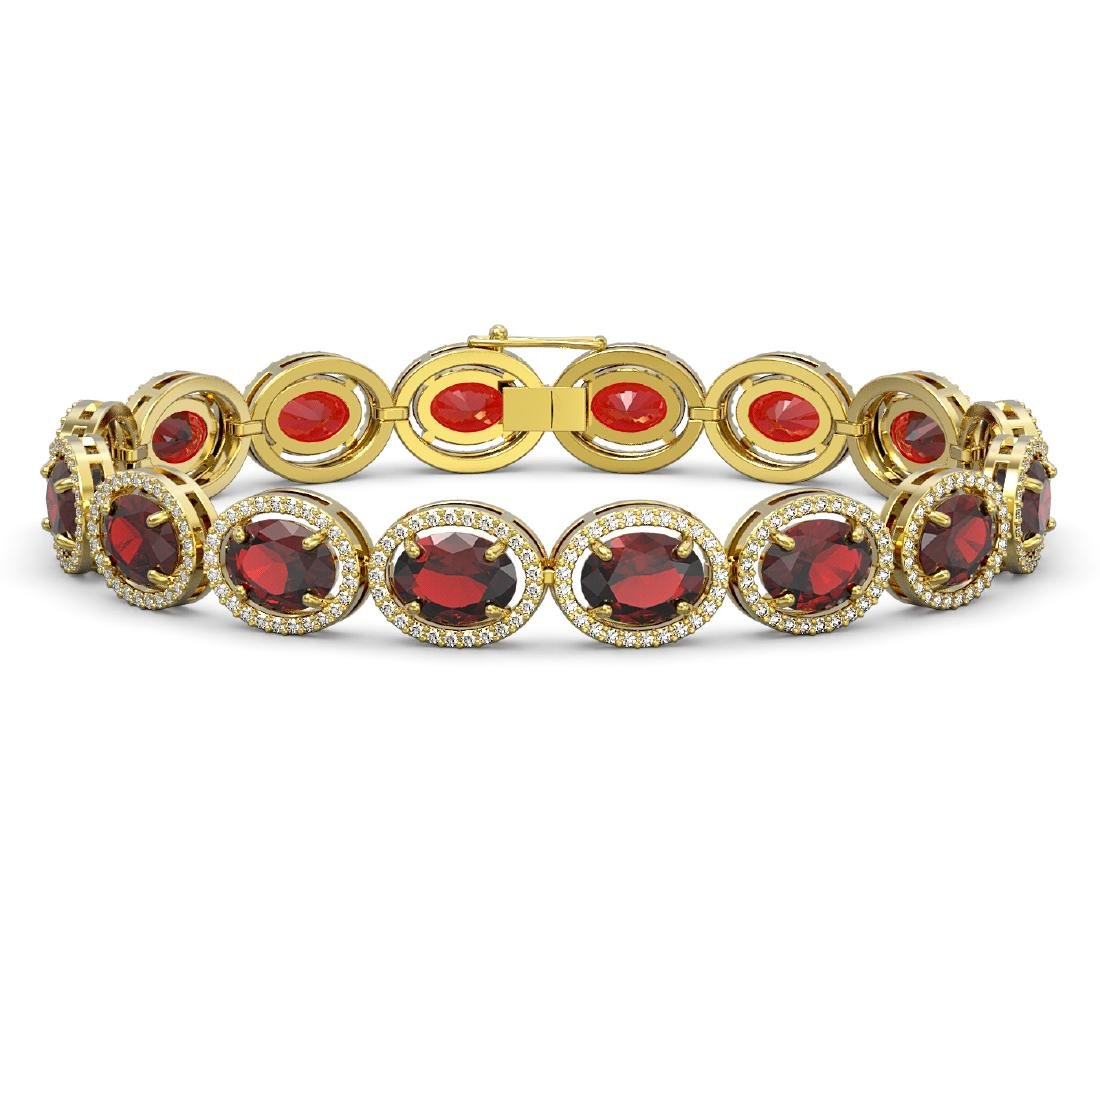 27.28 CTW Garnet & Diamond Halo Bracelet 10K Yellow